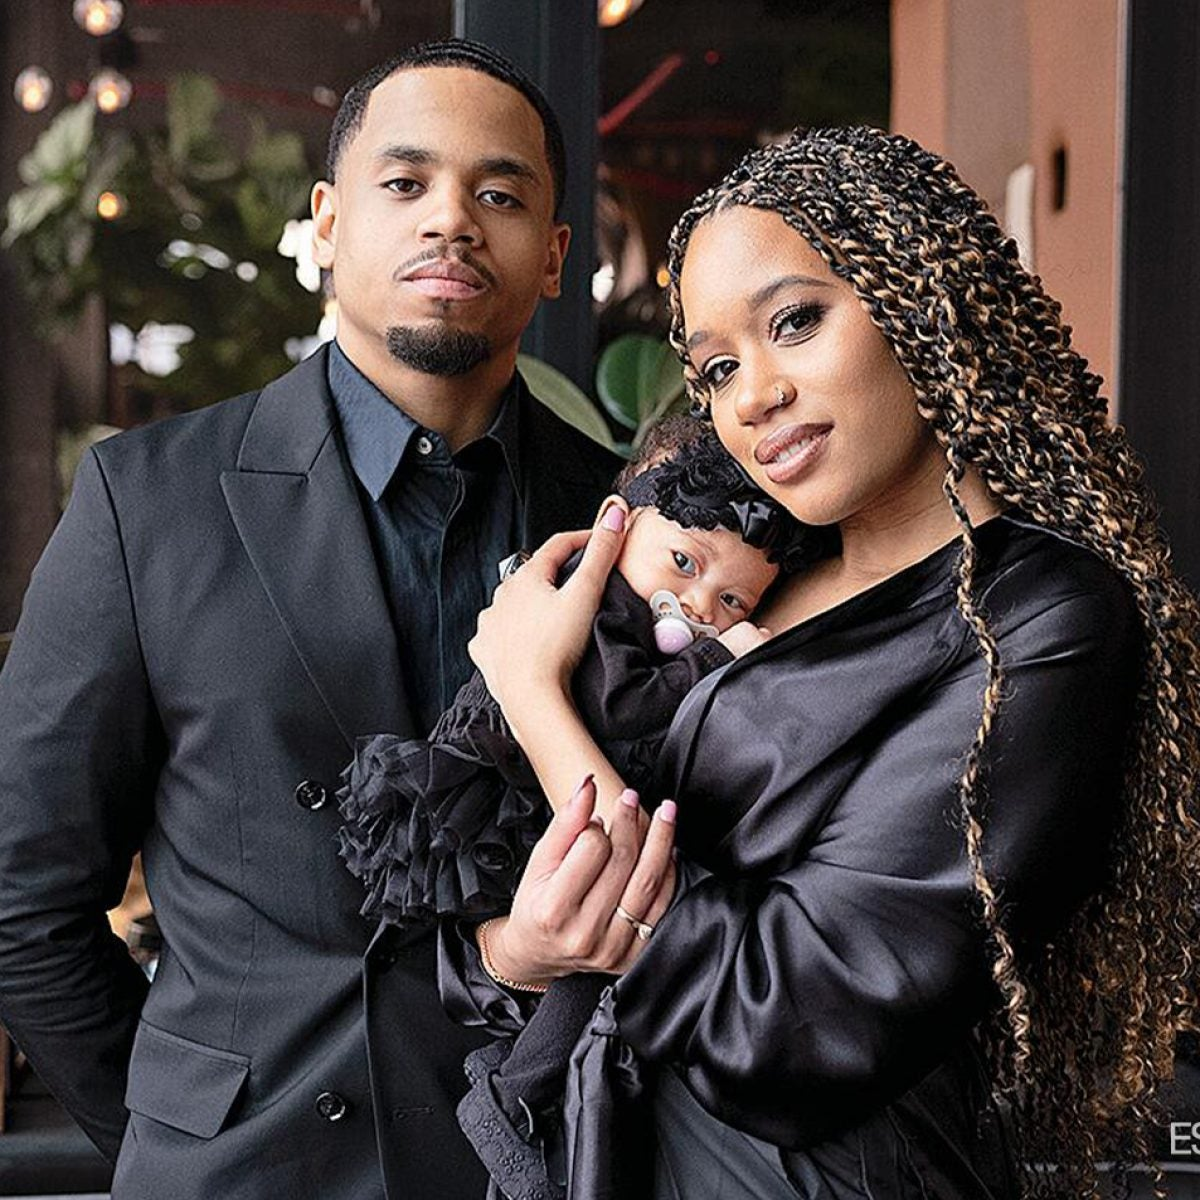 Exclusive: New Dad Mack Wilds' On The Joys Of Fatherhood and Family